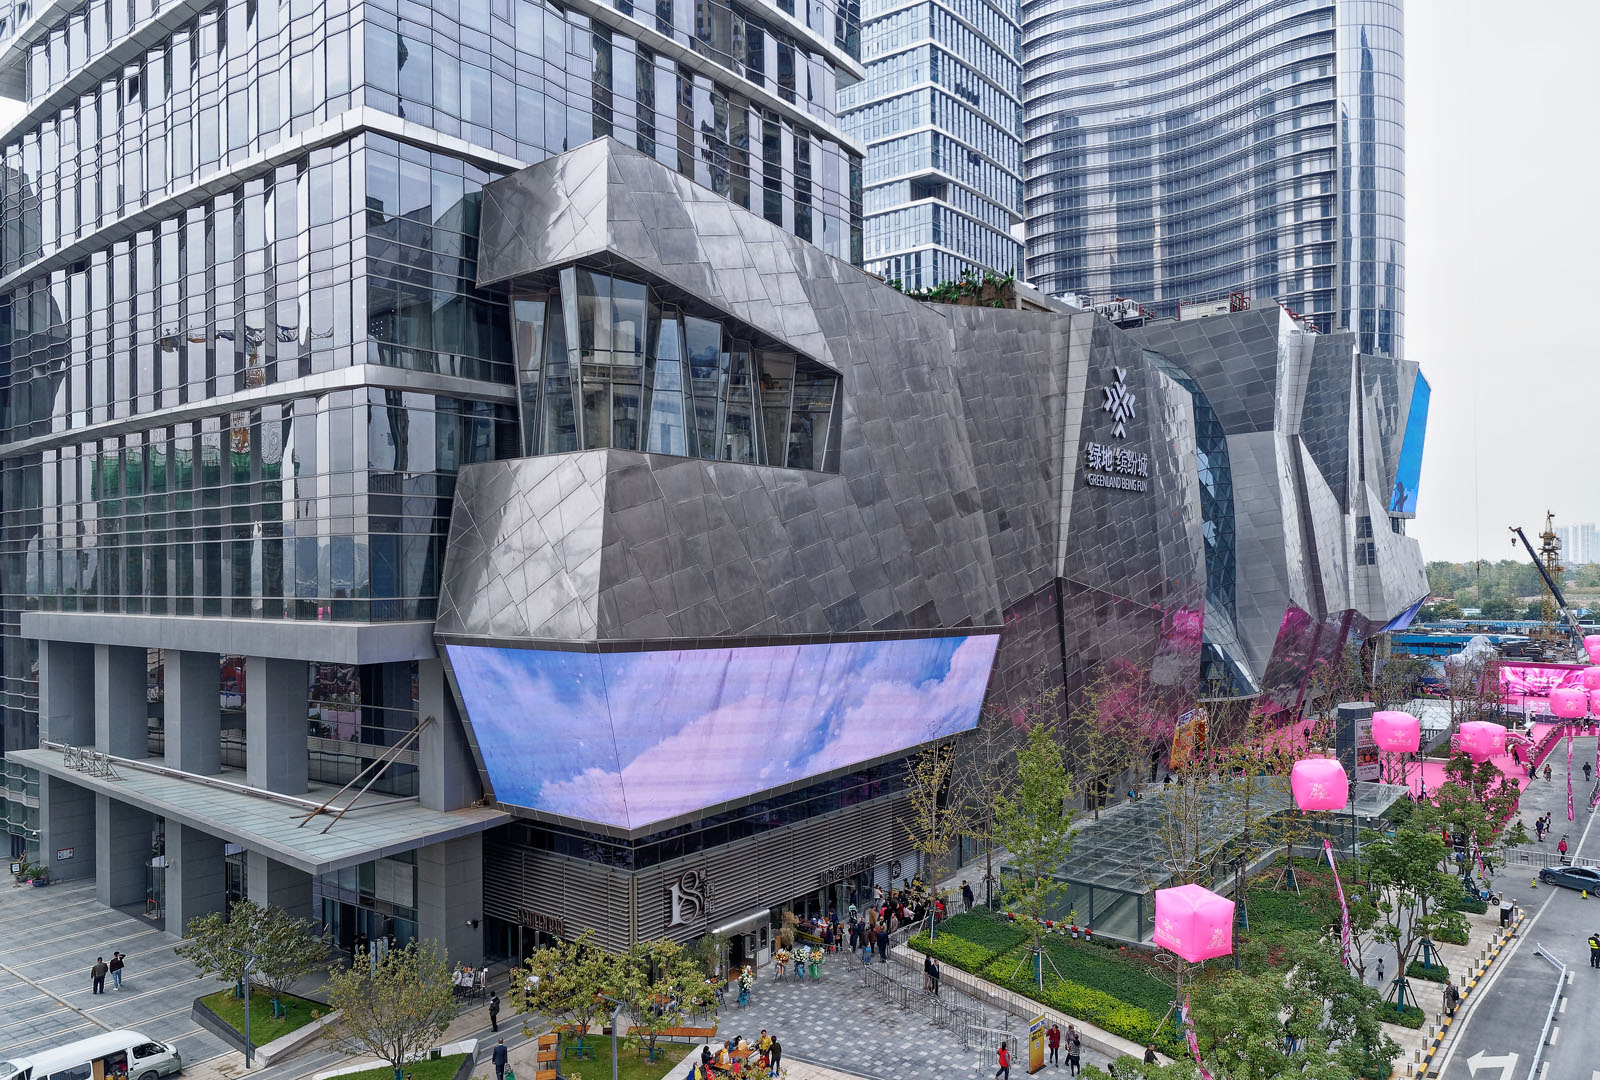 Architectural Photography of the architectural design of retail malls in China and Asia including, exteriors, interiors, and aerial drone photography. Paul Dingman designs photographs for architects.